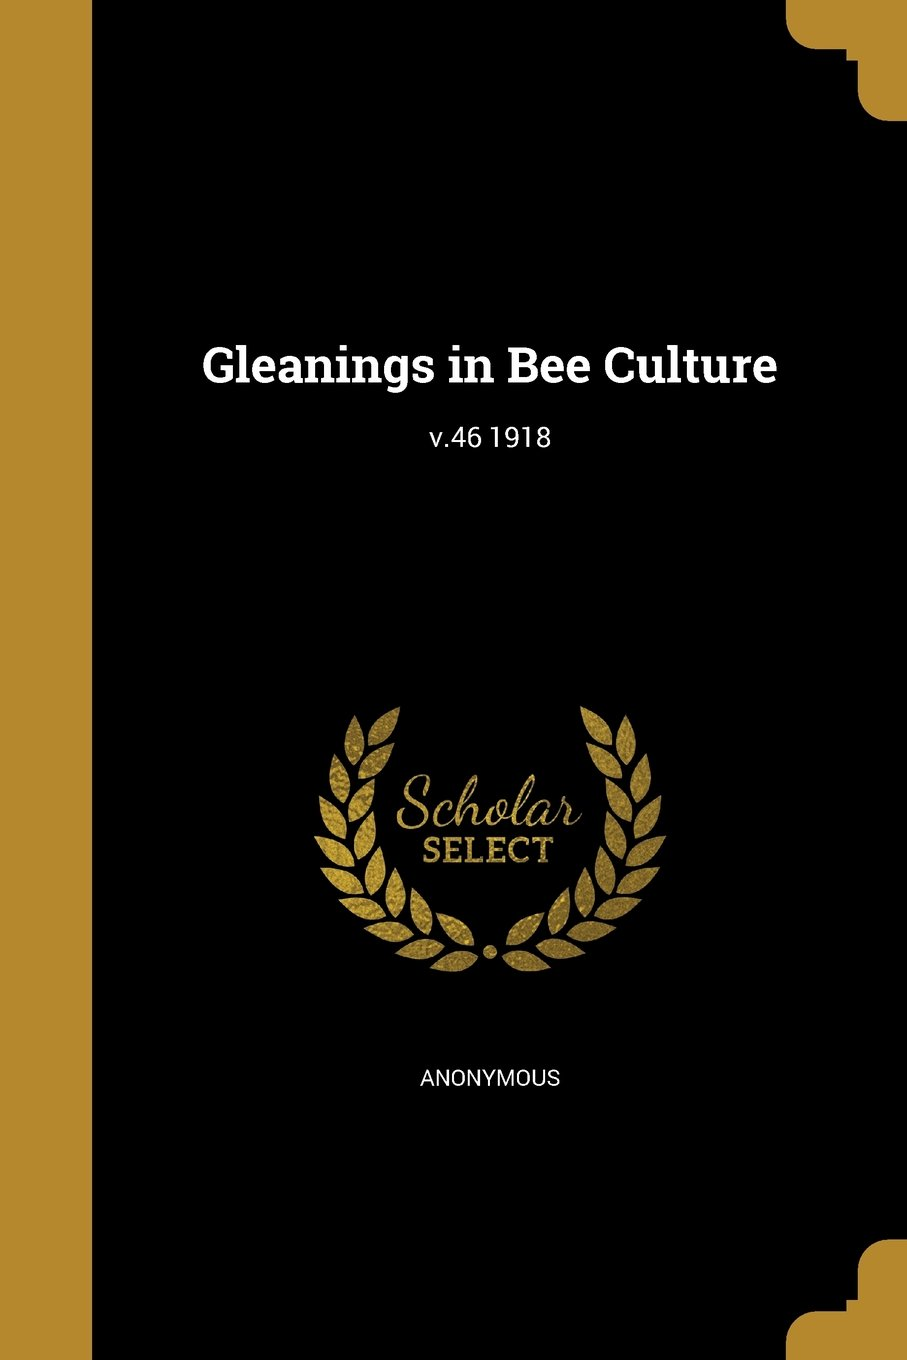 Gleanings in Bee Culture; V.46 1918 pdf